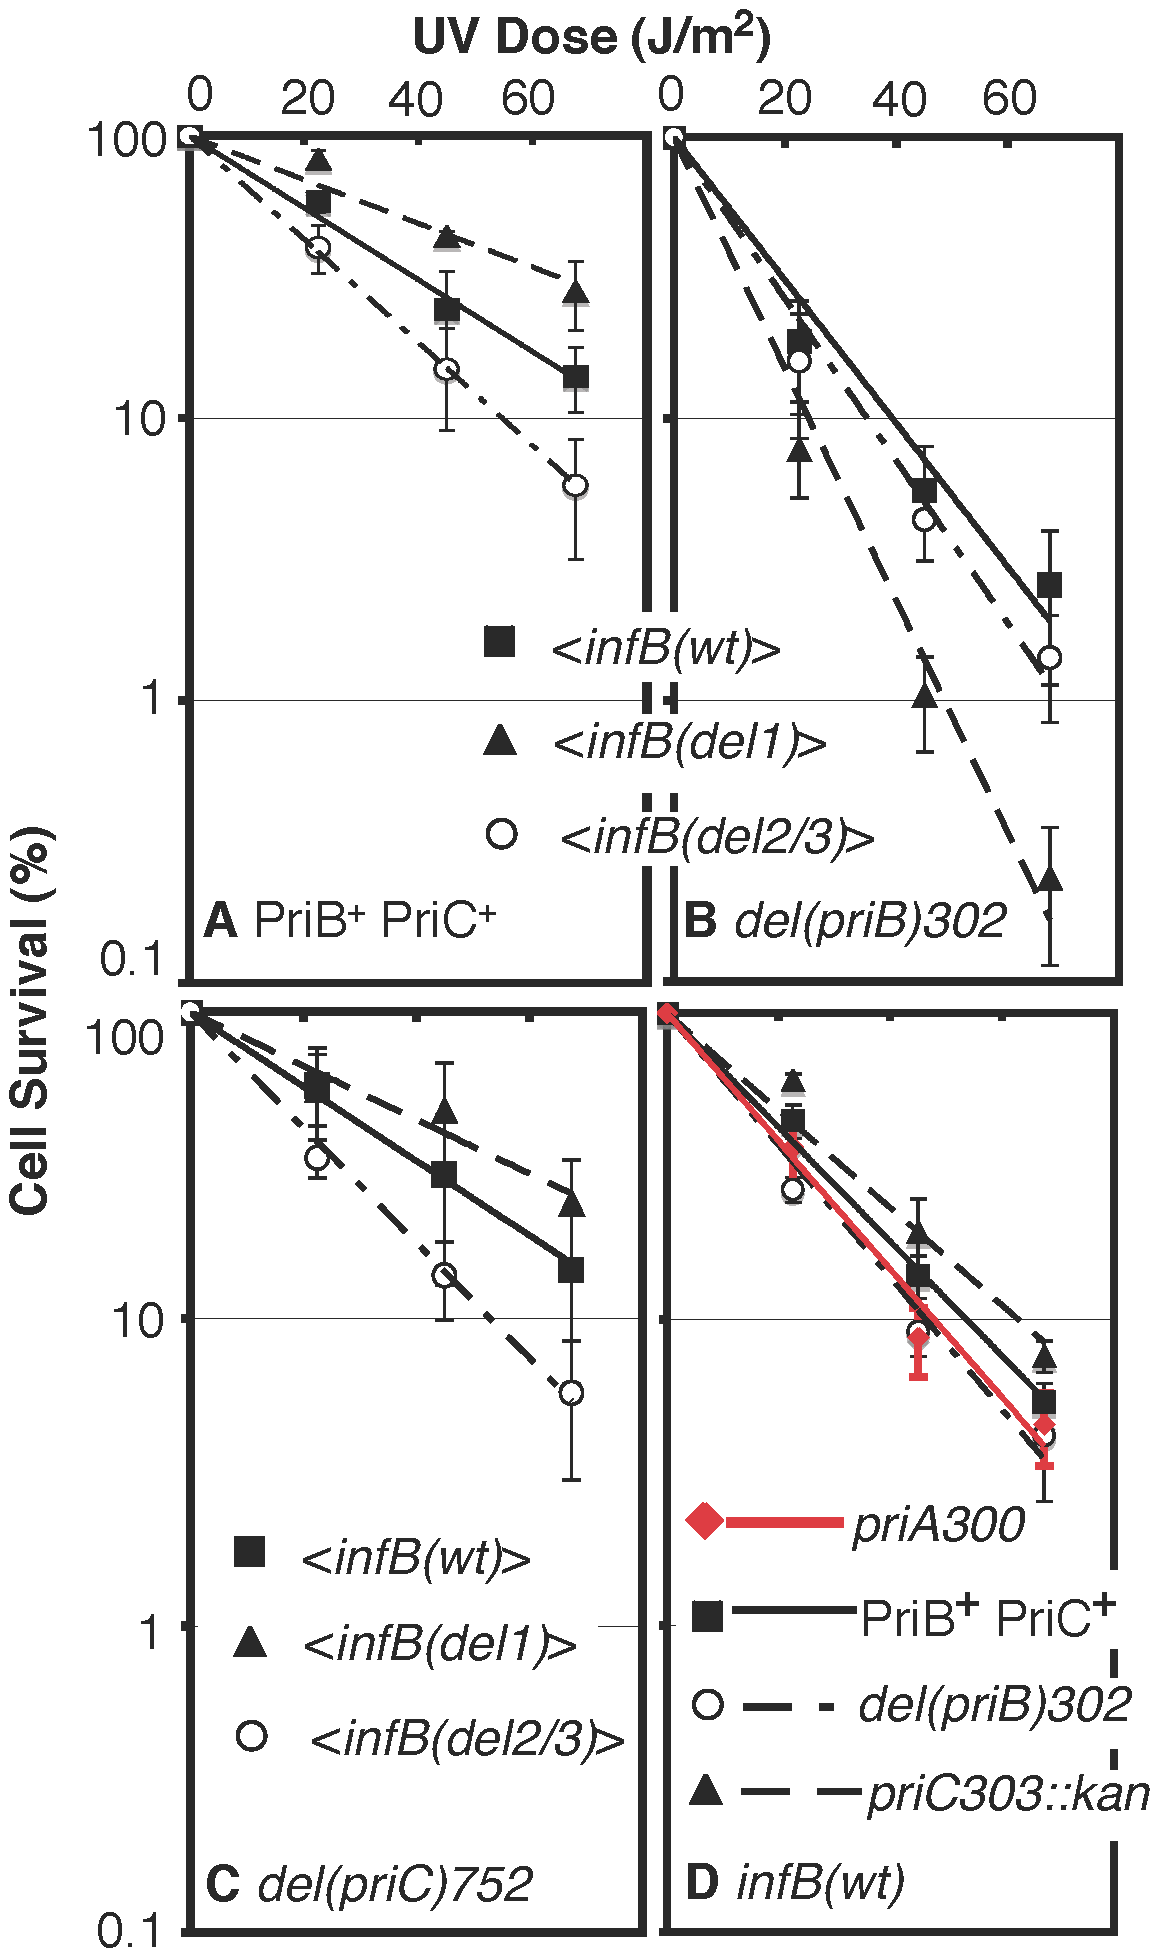 UV sensitivity of <i>&lt;infB(del1)&gt; and &lt;infB(del2/3)&gt;</i> and epistasis analysis with <i>priB</i> and <i>priC</i>.